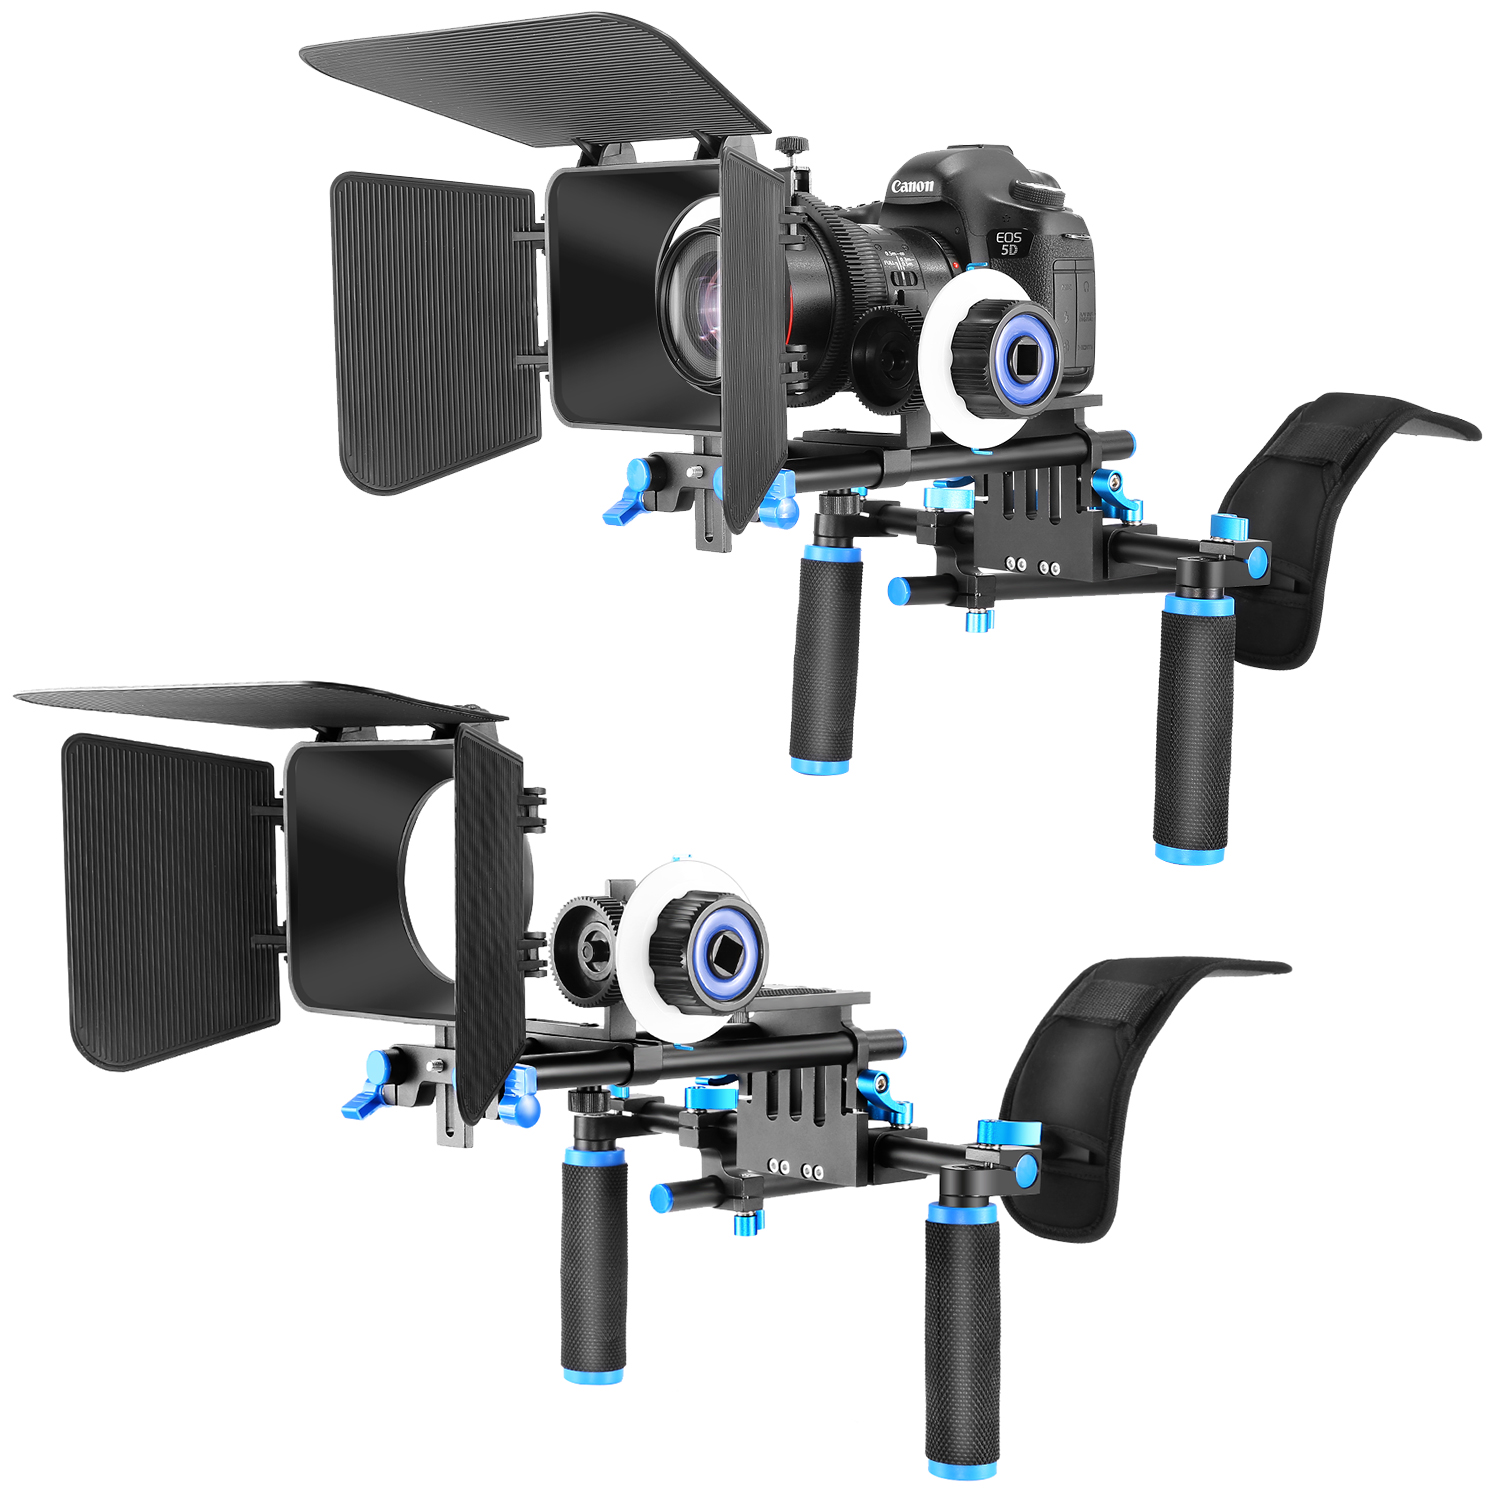 01dea8d99 Details about Neewer DSLR Rig Kit Shoulder Mount Rig with Follow Focus and Matte  Box f Camera